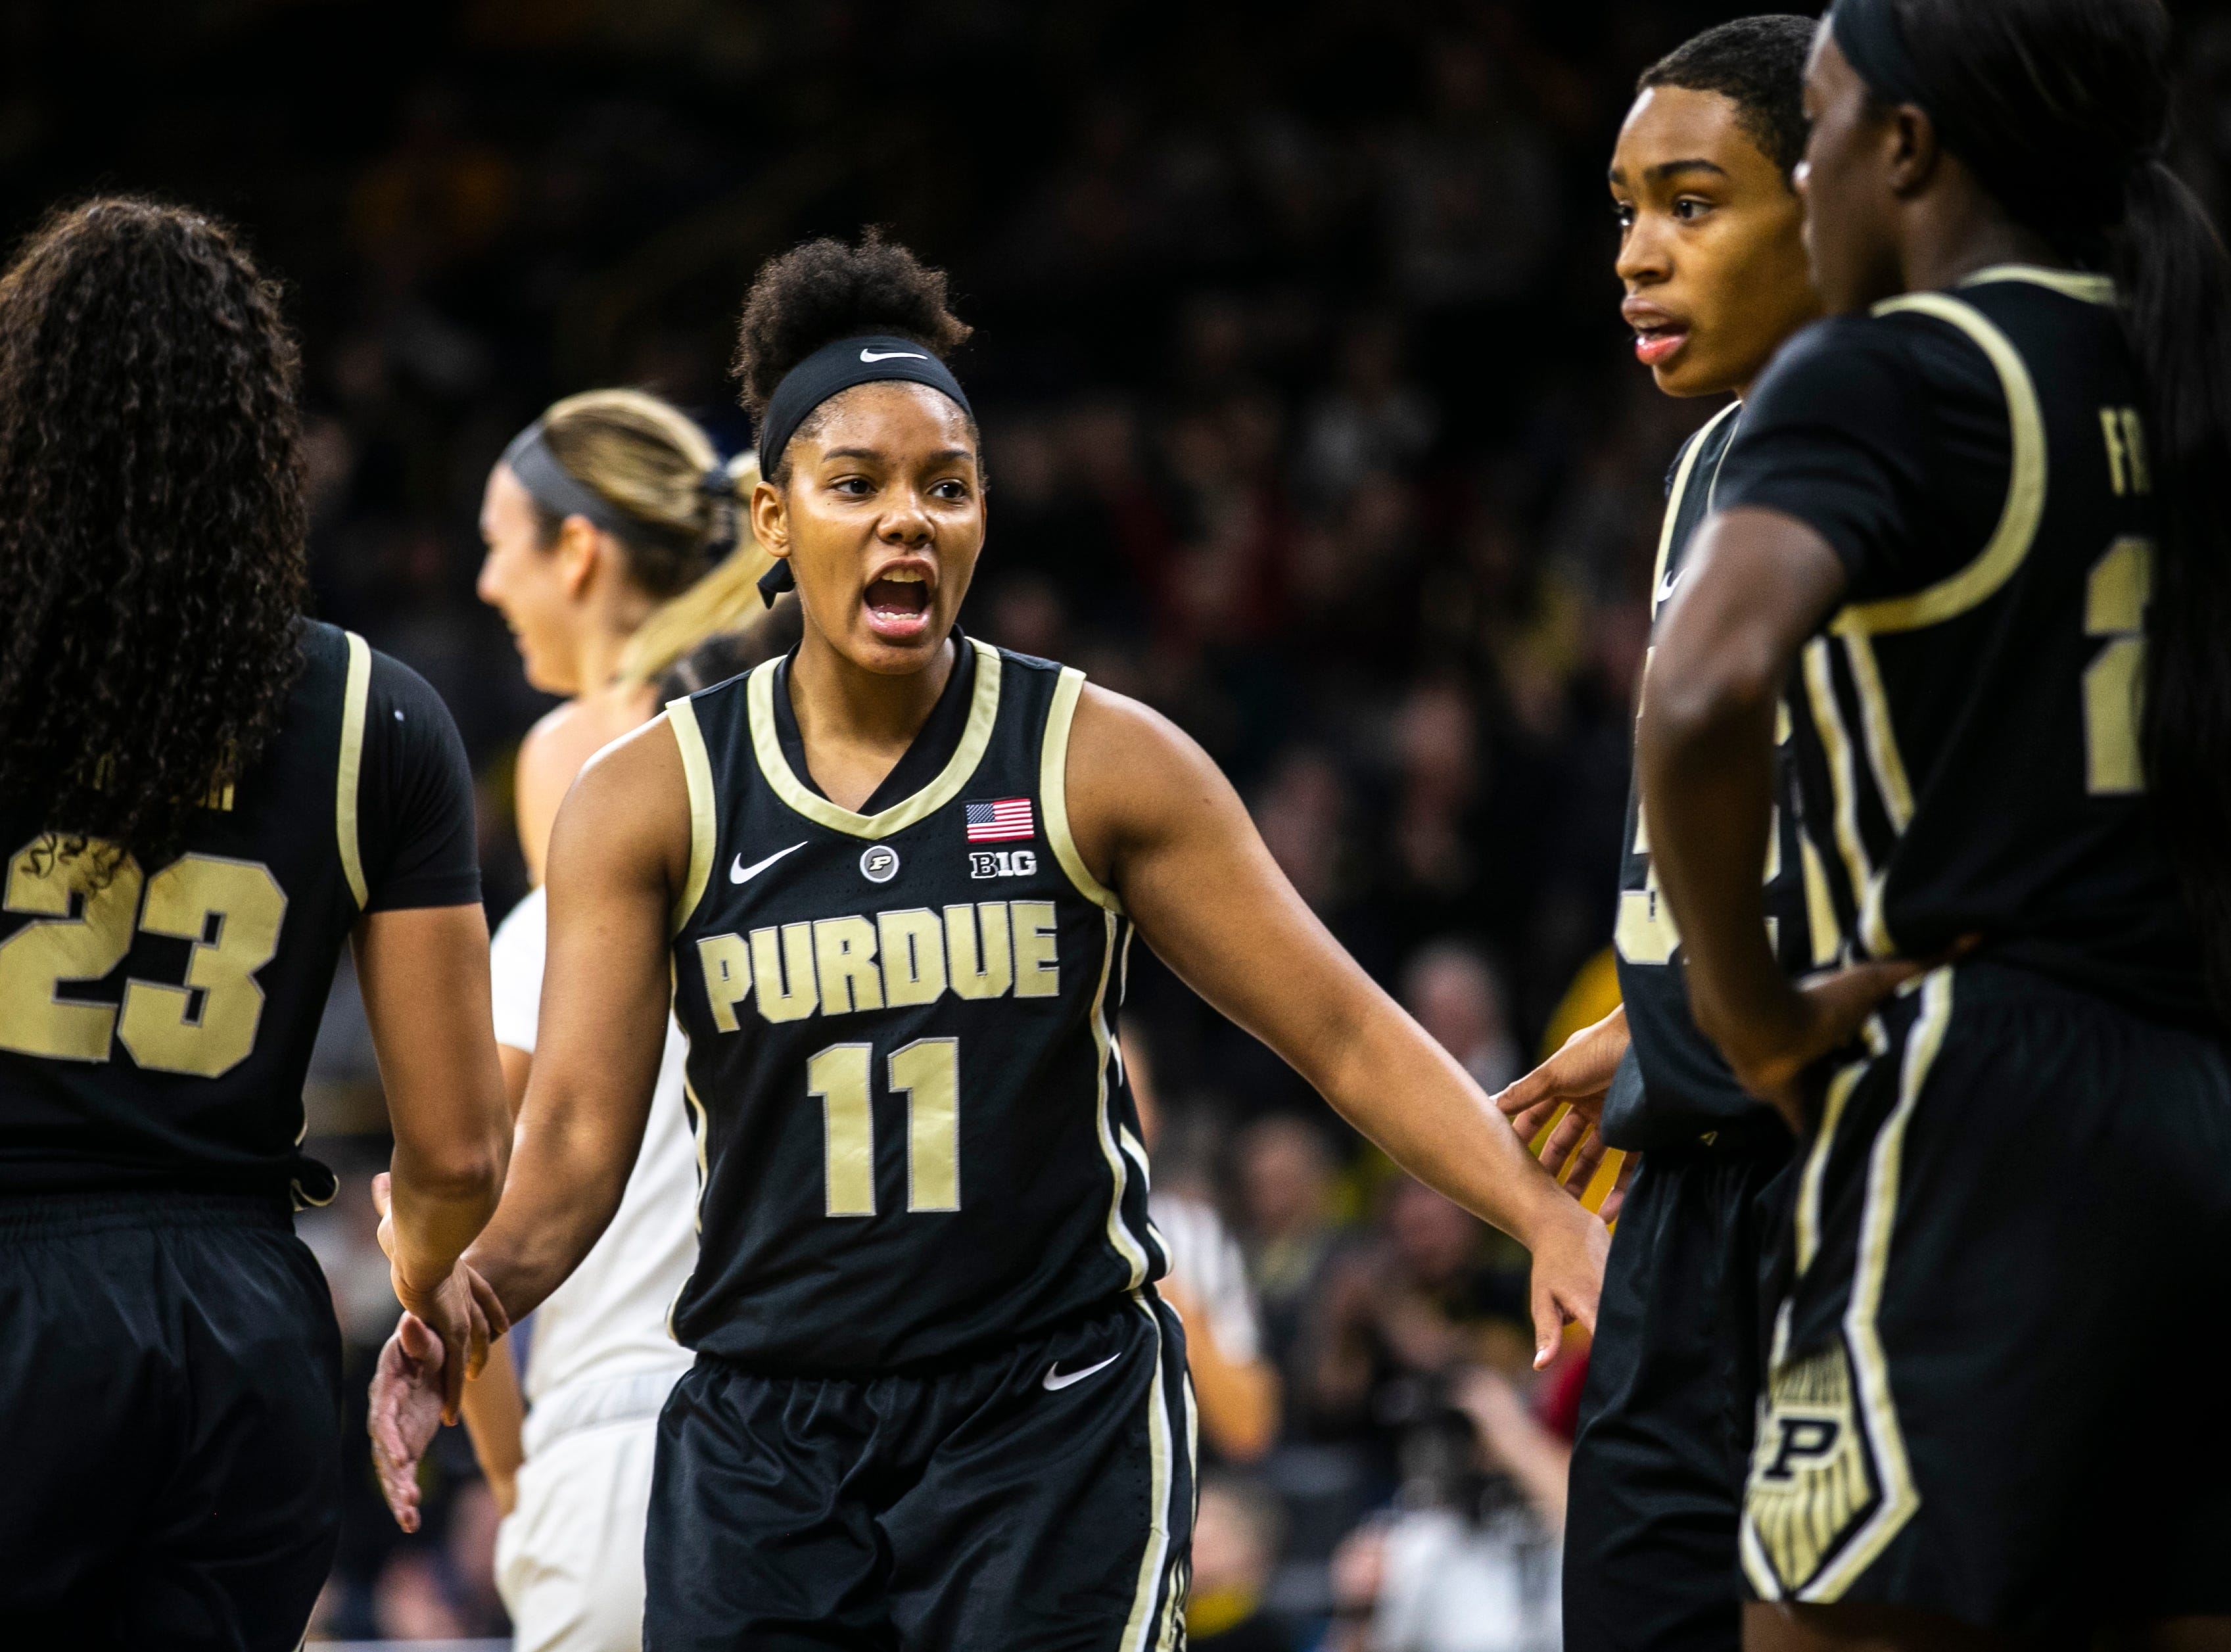 Purdue guard Dominique Oden (11) talks with teammates during a NCAA Big Ten Conference women's basketball game on Sunday, Jan. 27, 2019, at Carver-Hawkeye Arena in Iowa City, Iowa.